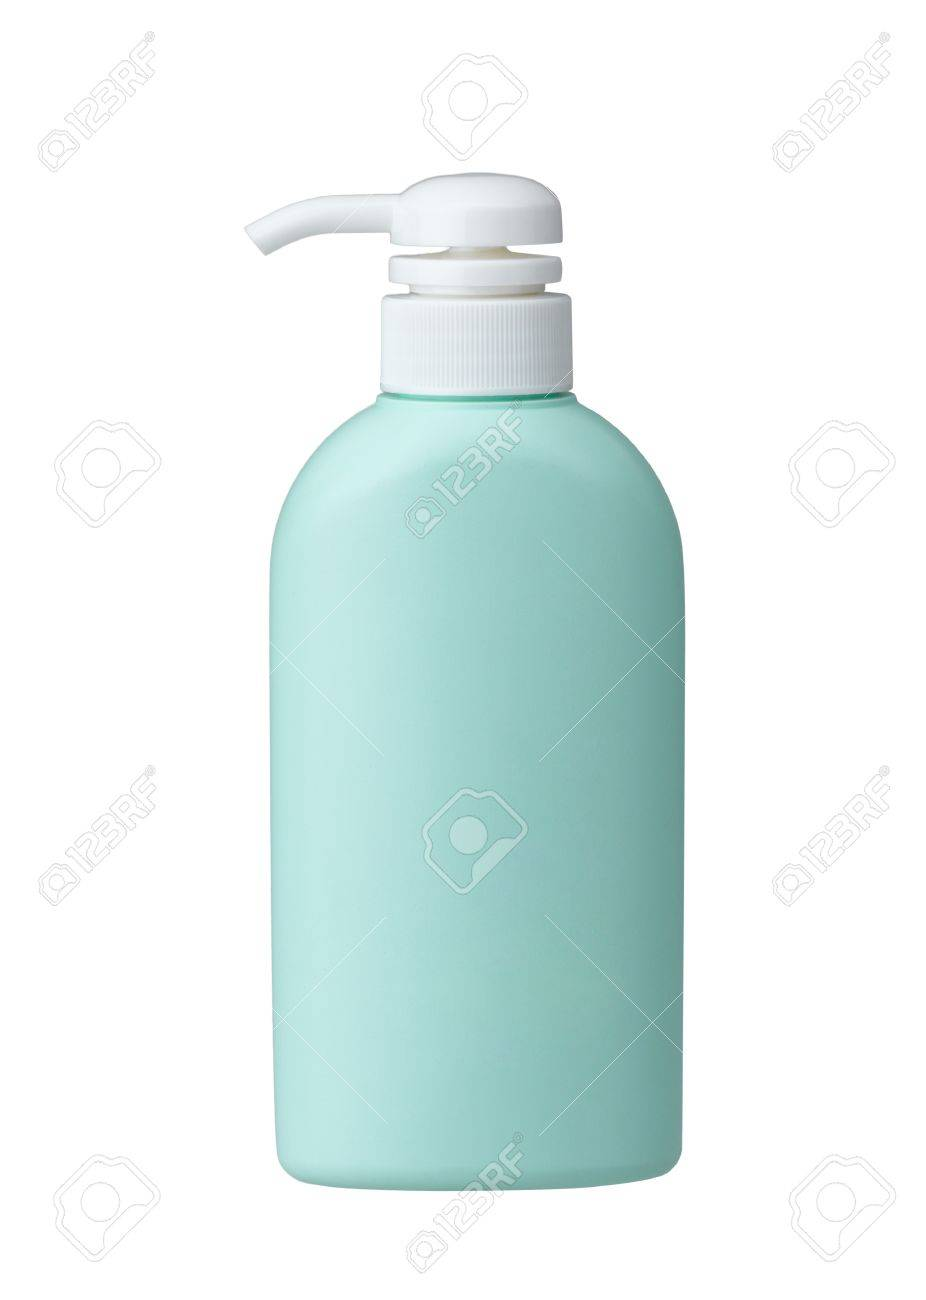 Cosmetic bottle without label for you put your brand or text on it Stock Photo - 16844729